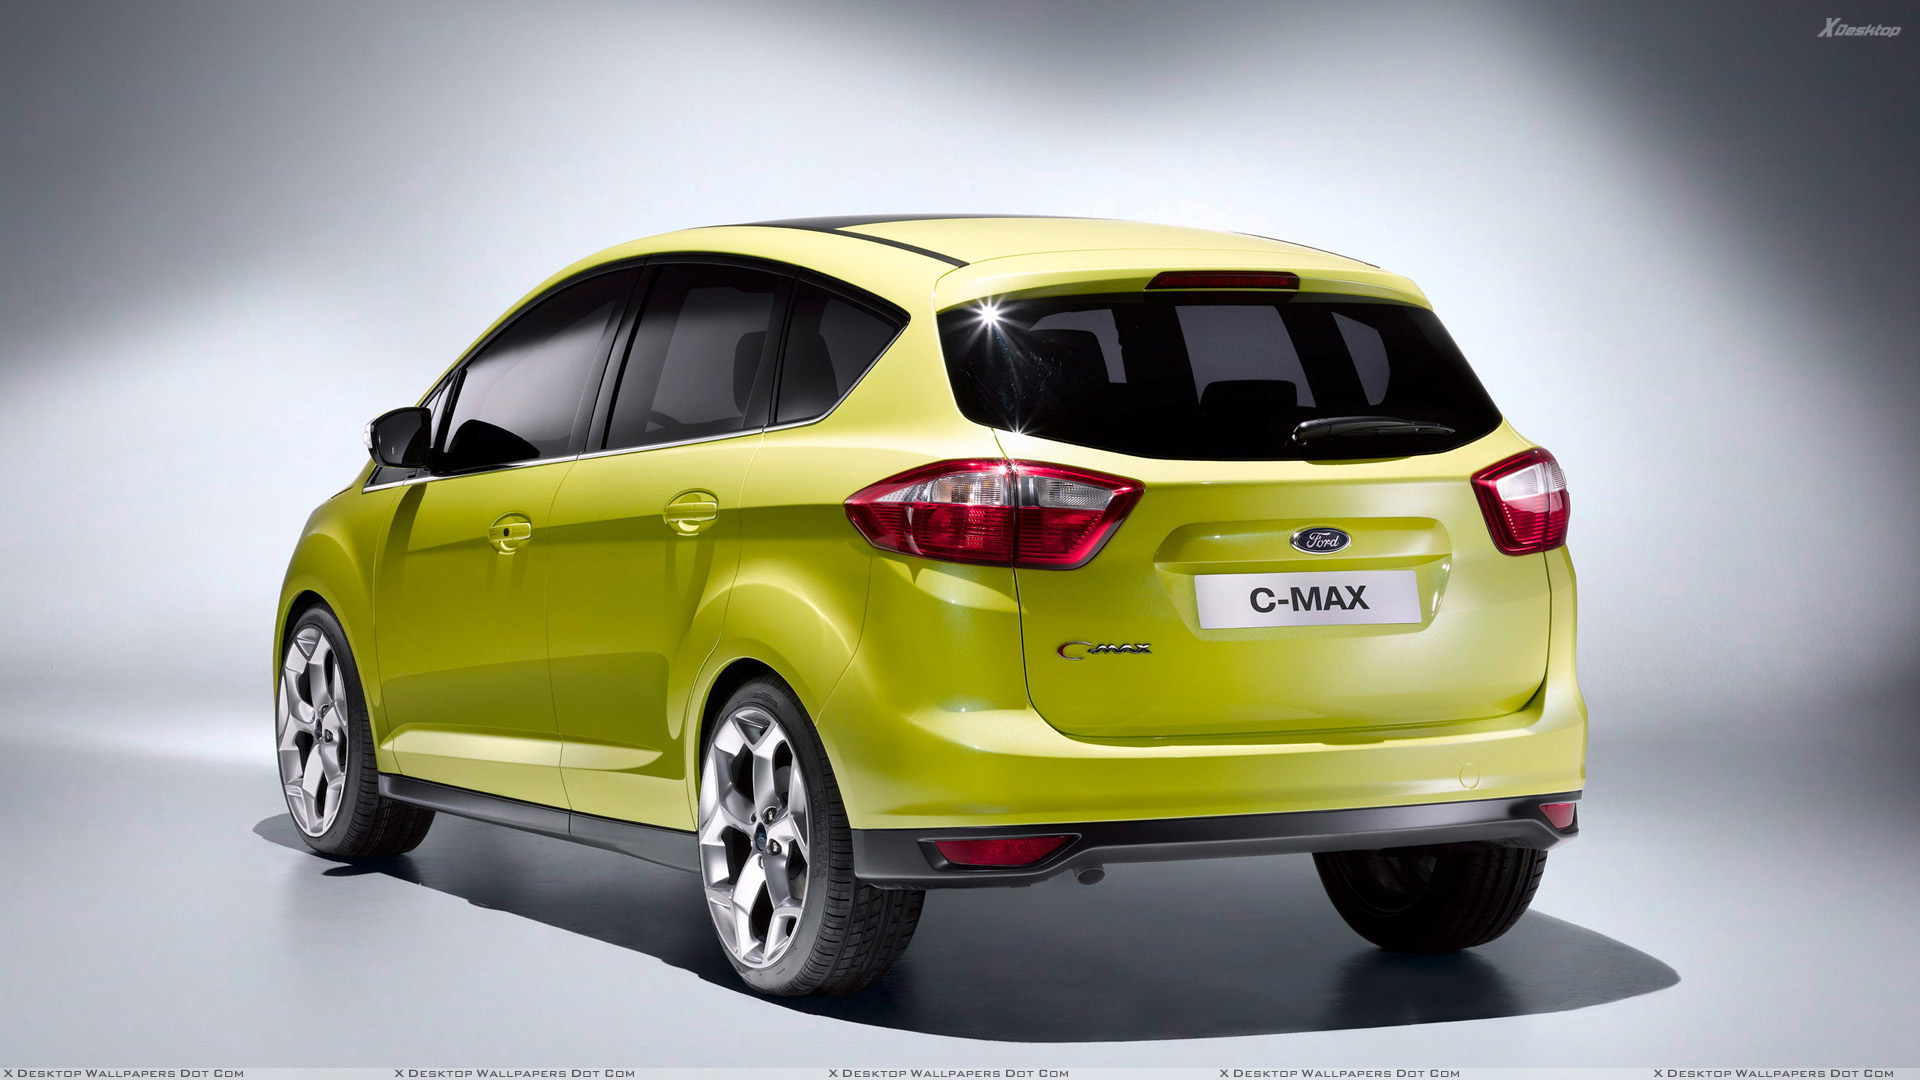 2010 ford c max in green back side pose wallpaper. Black Bedroom Furniture Sets. Home Design Ideas